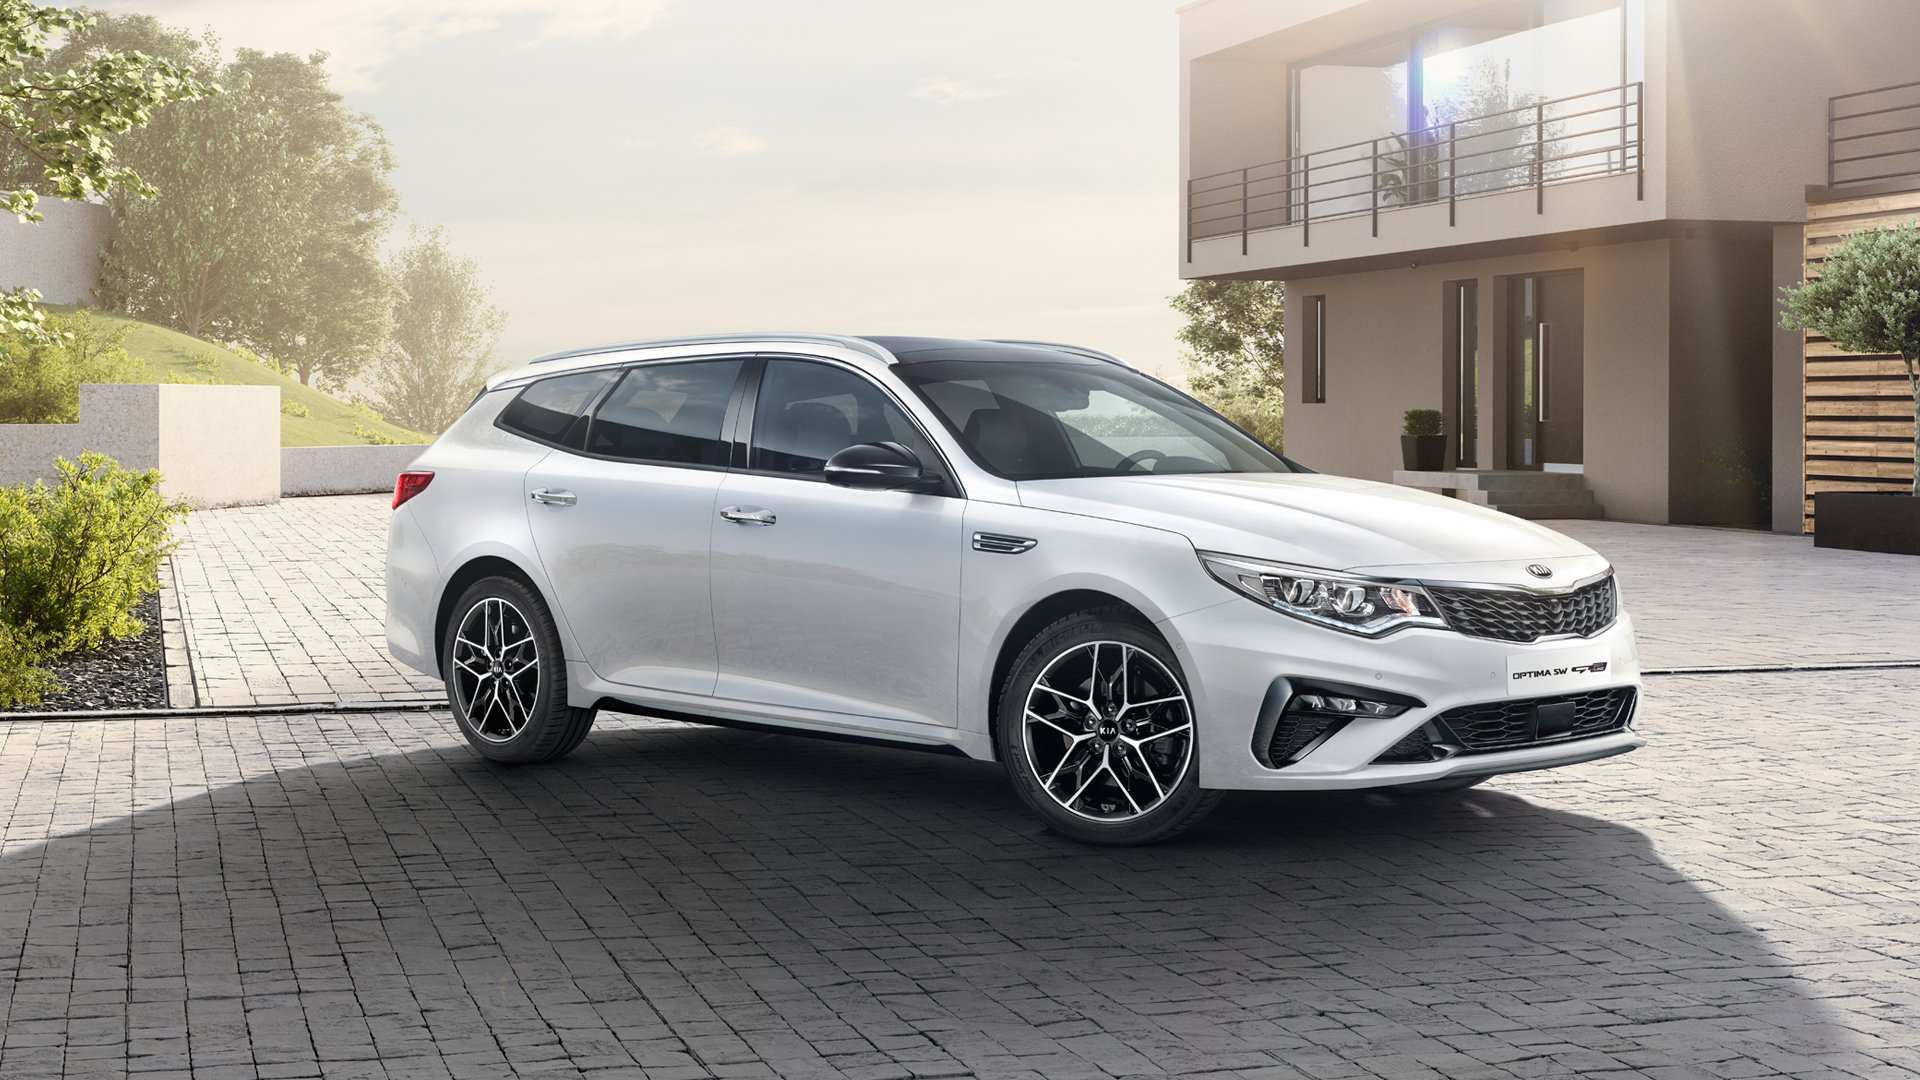 43 Concept of Kia Wagon 2019 Price Exterior and Interior with Kia Wagon 2019 Price